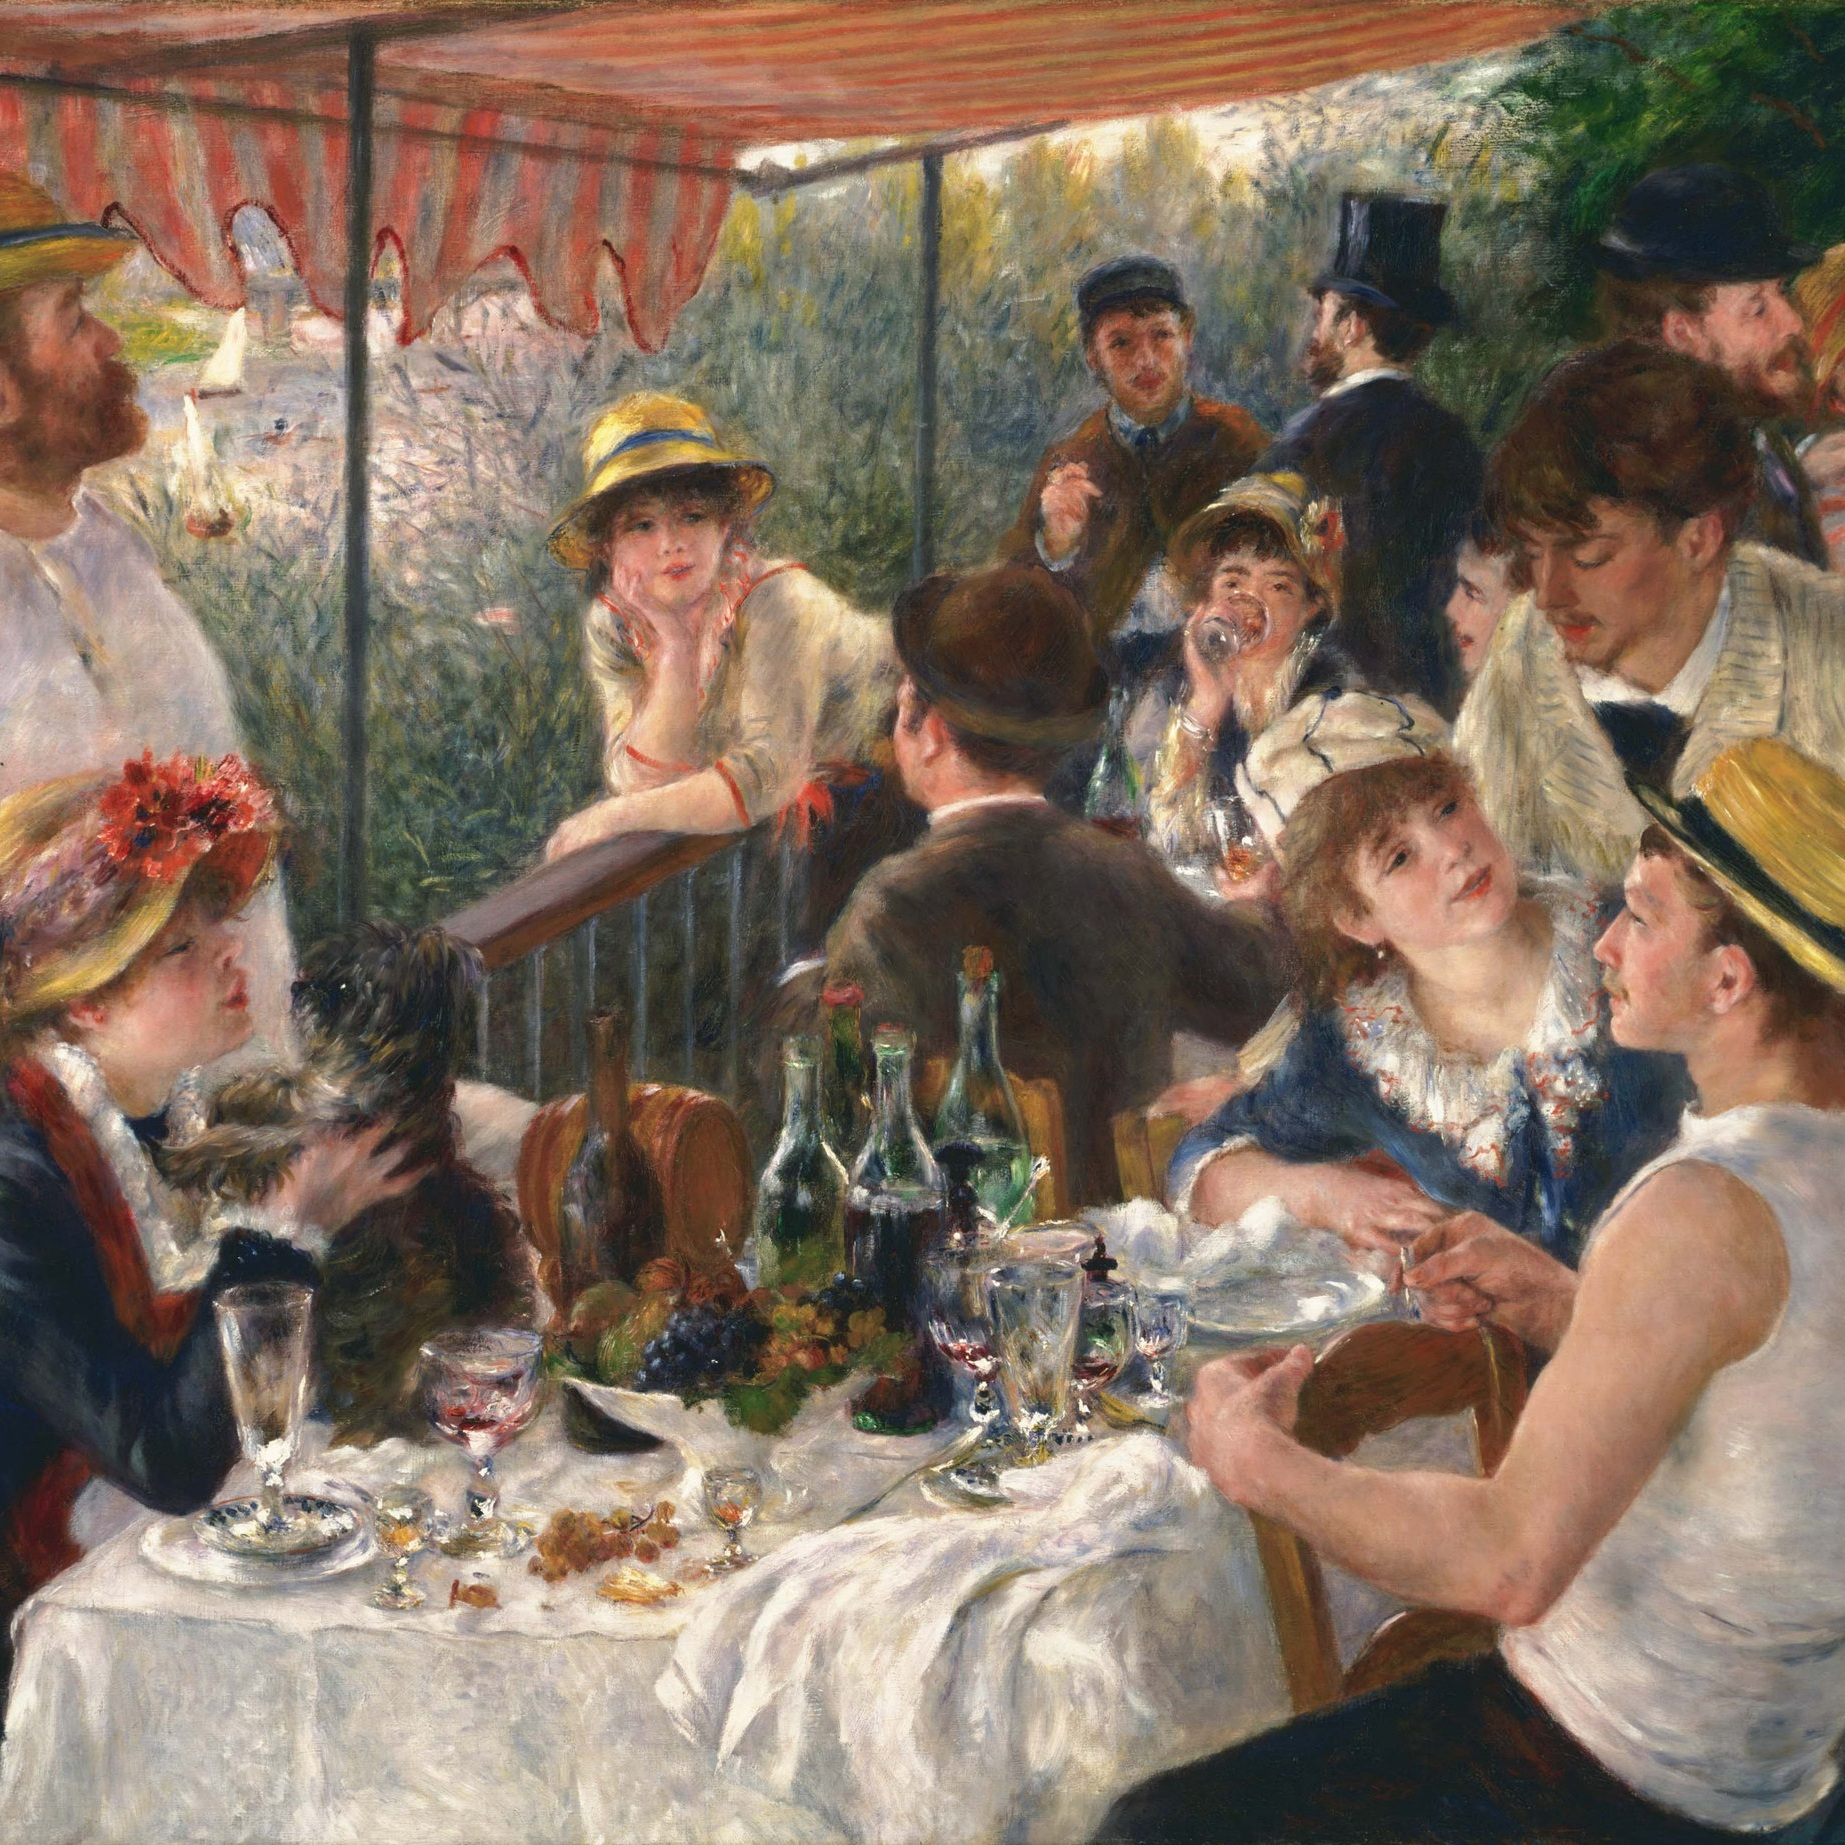 Pierre-Auguste_Renoir_-_Luncheon_of_the_Boating_Party_-_Google_Art_Project+square.jpg